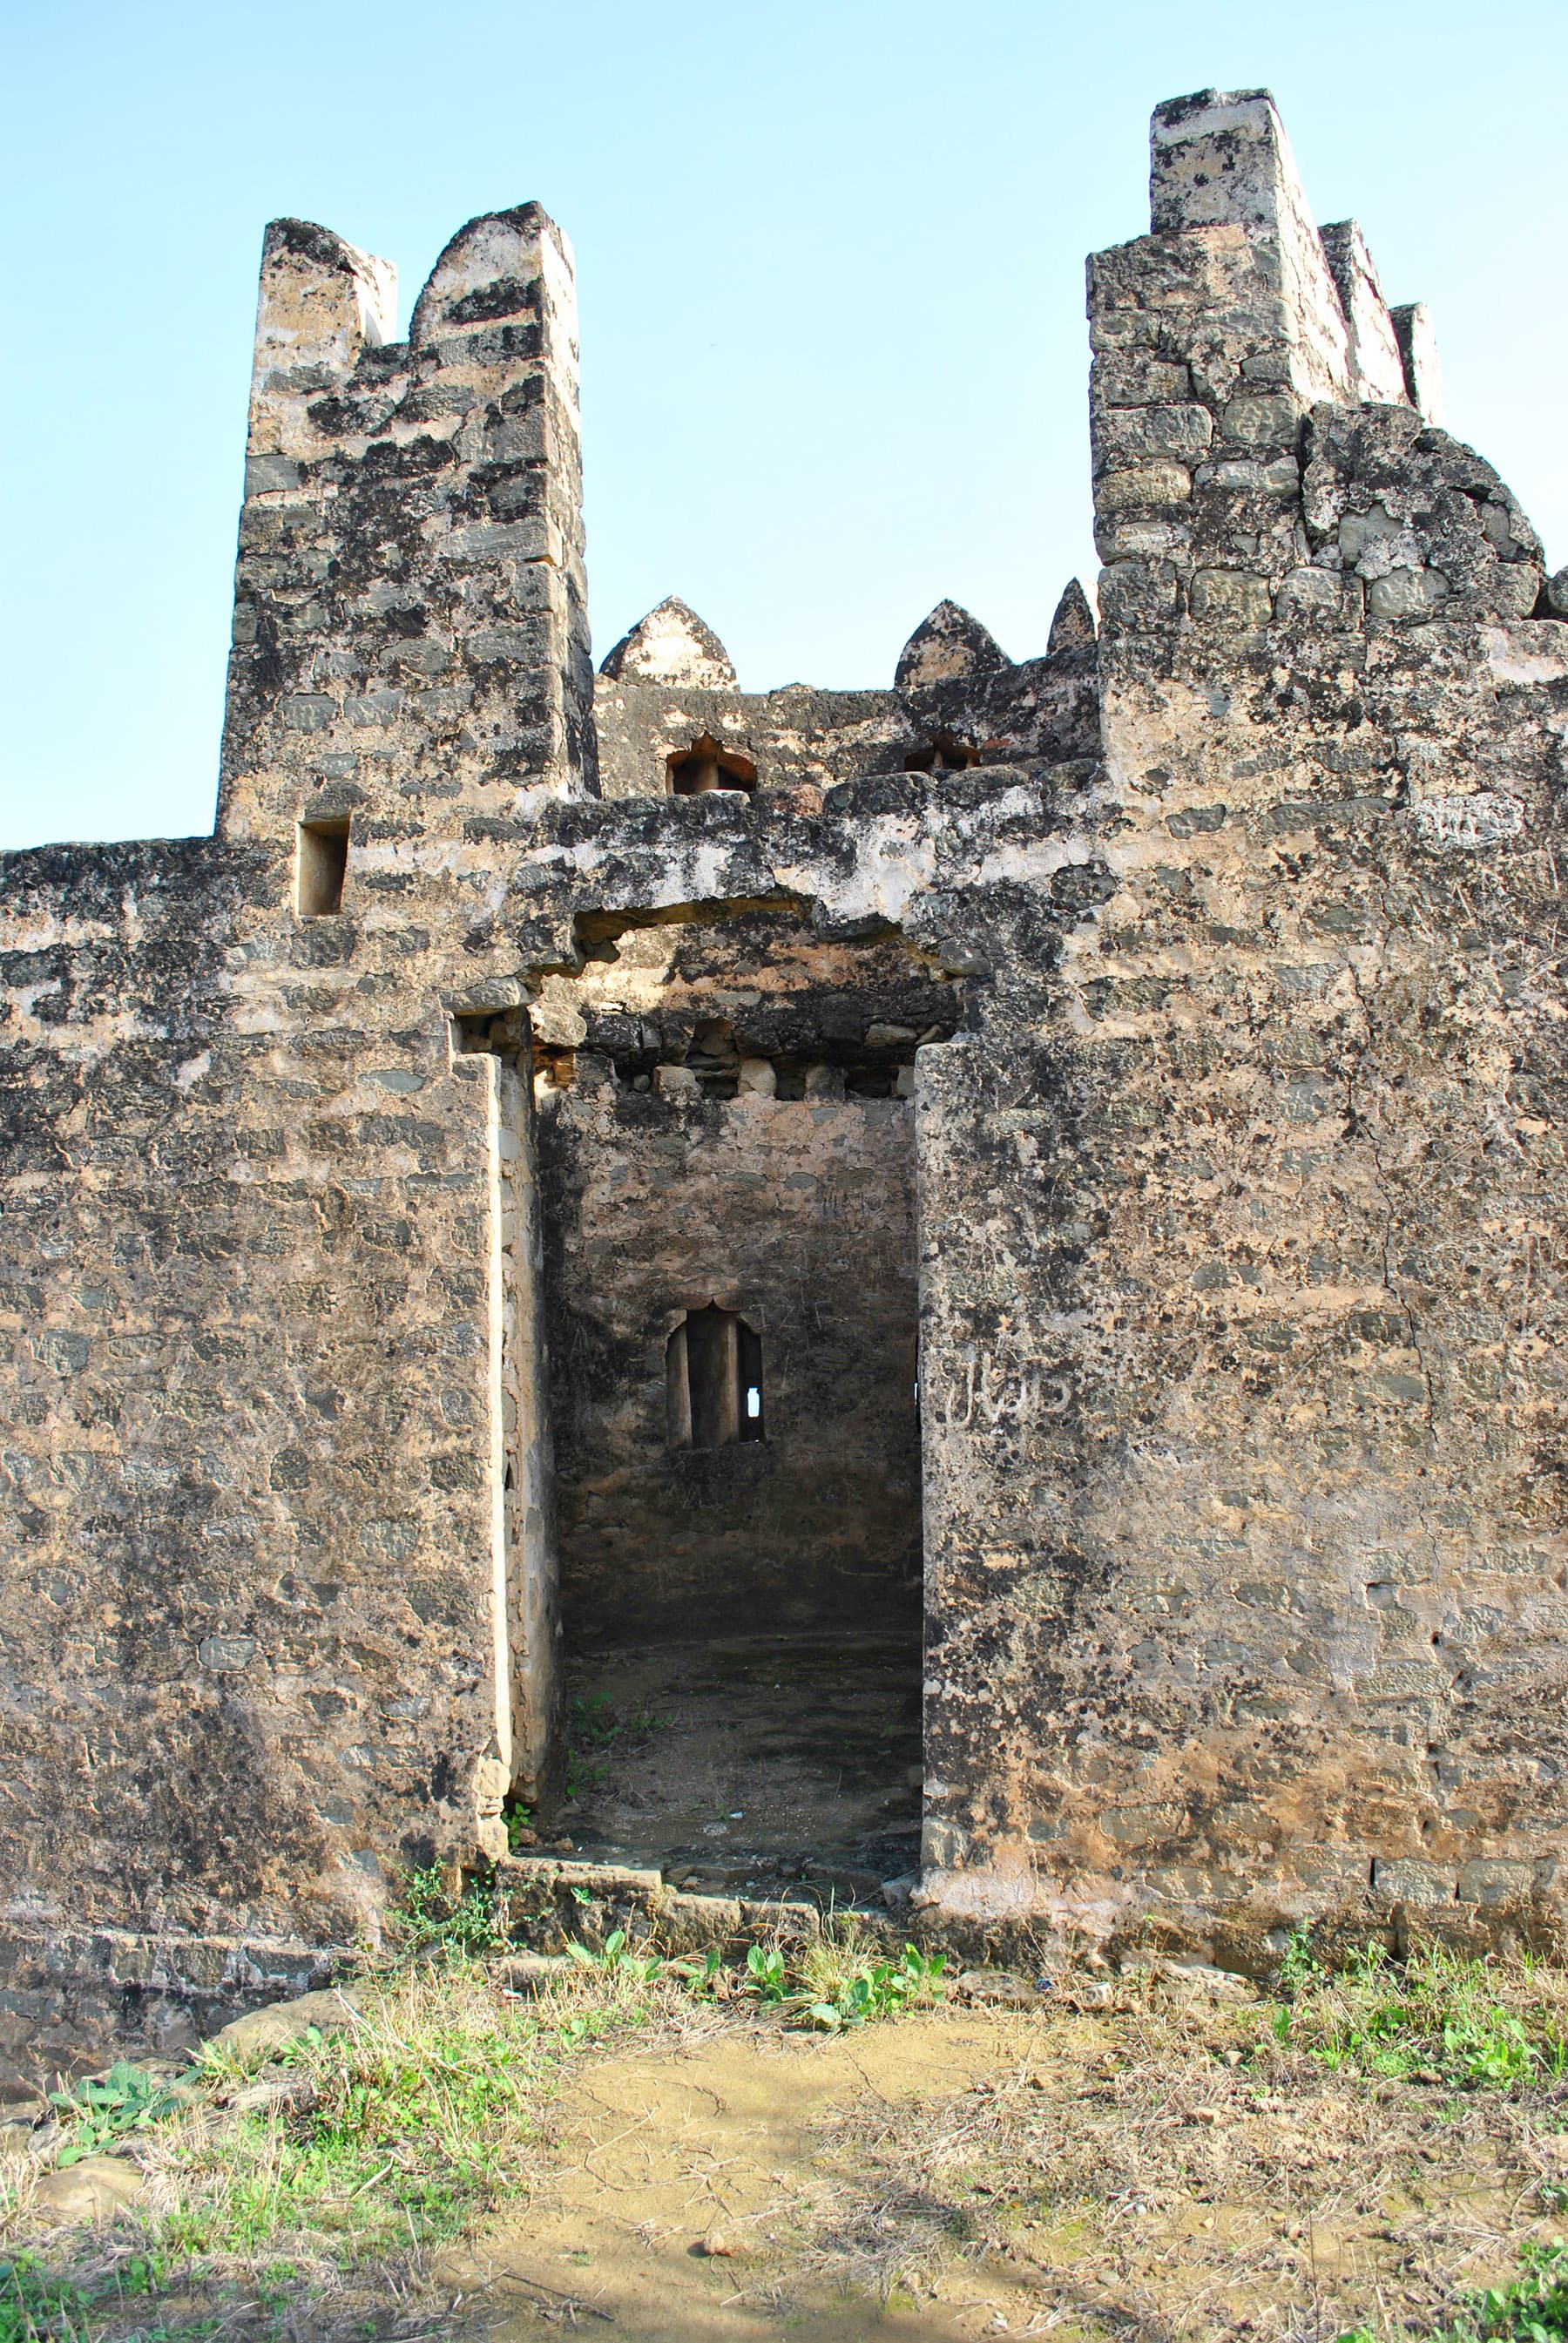 Narrow loopholes for musketry are alterations of the time when Dogra Maharaja of Kashmir held this fort in 19th century.